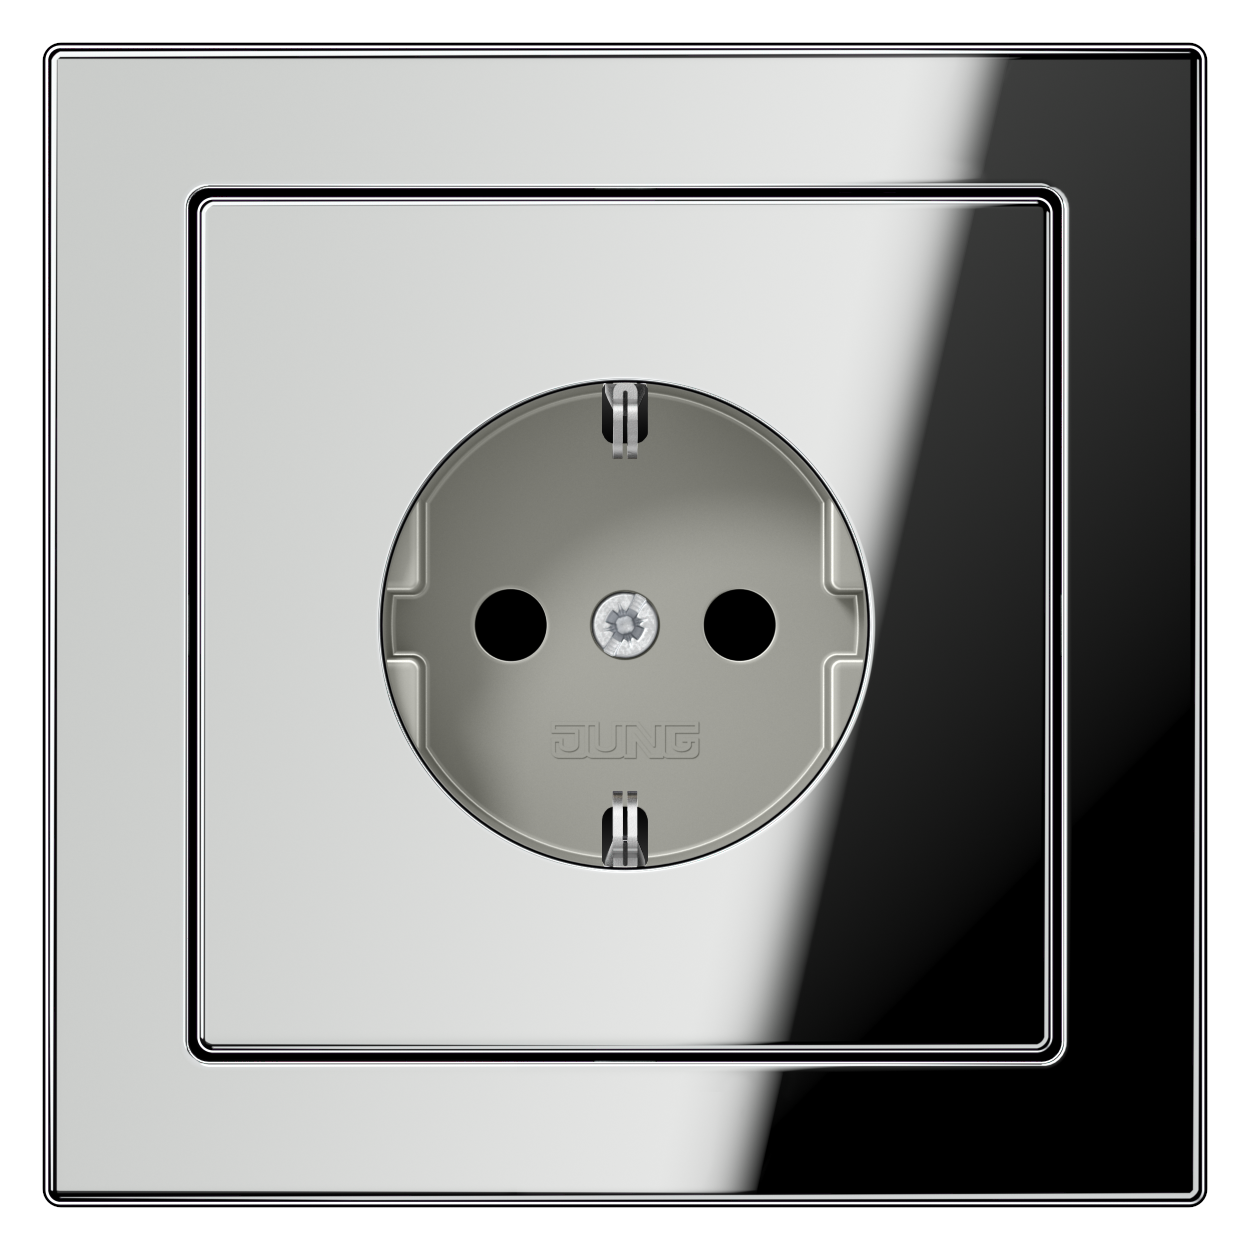 JUNG_LS_Design_chrome_socket